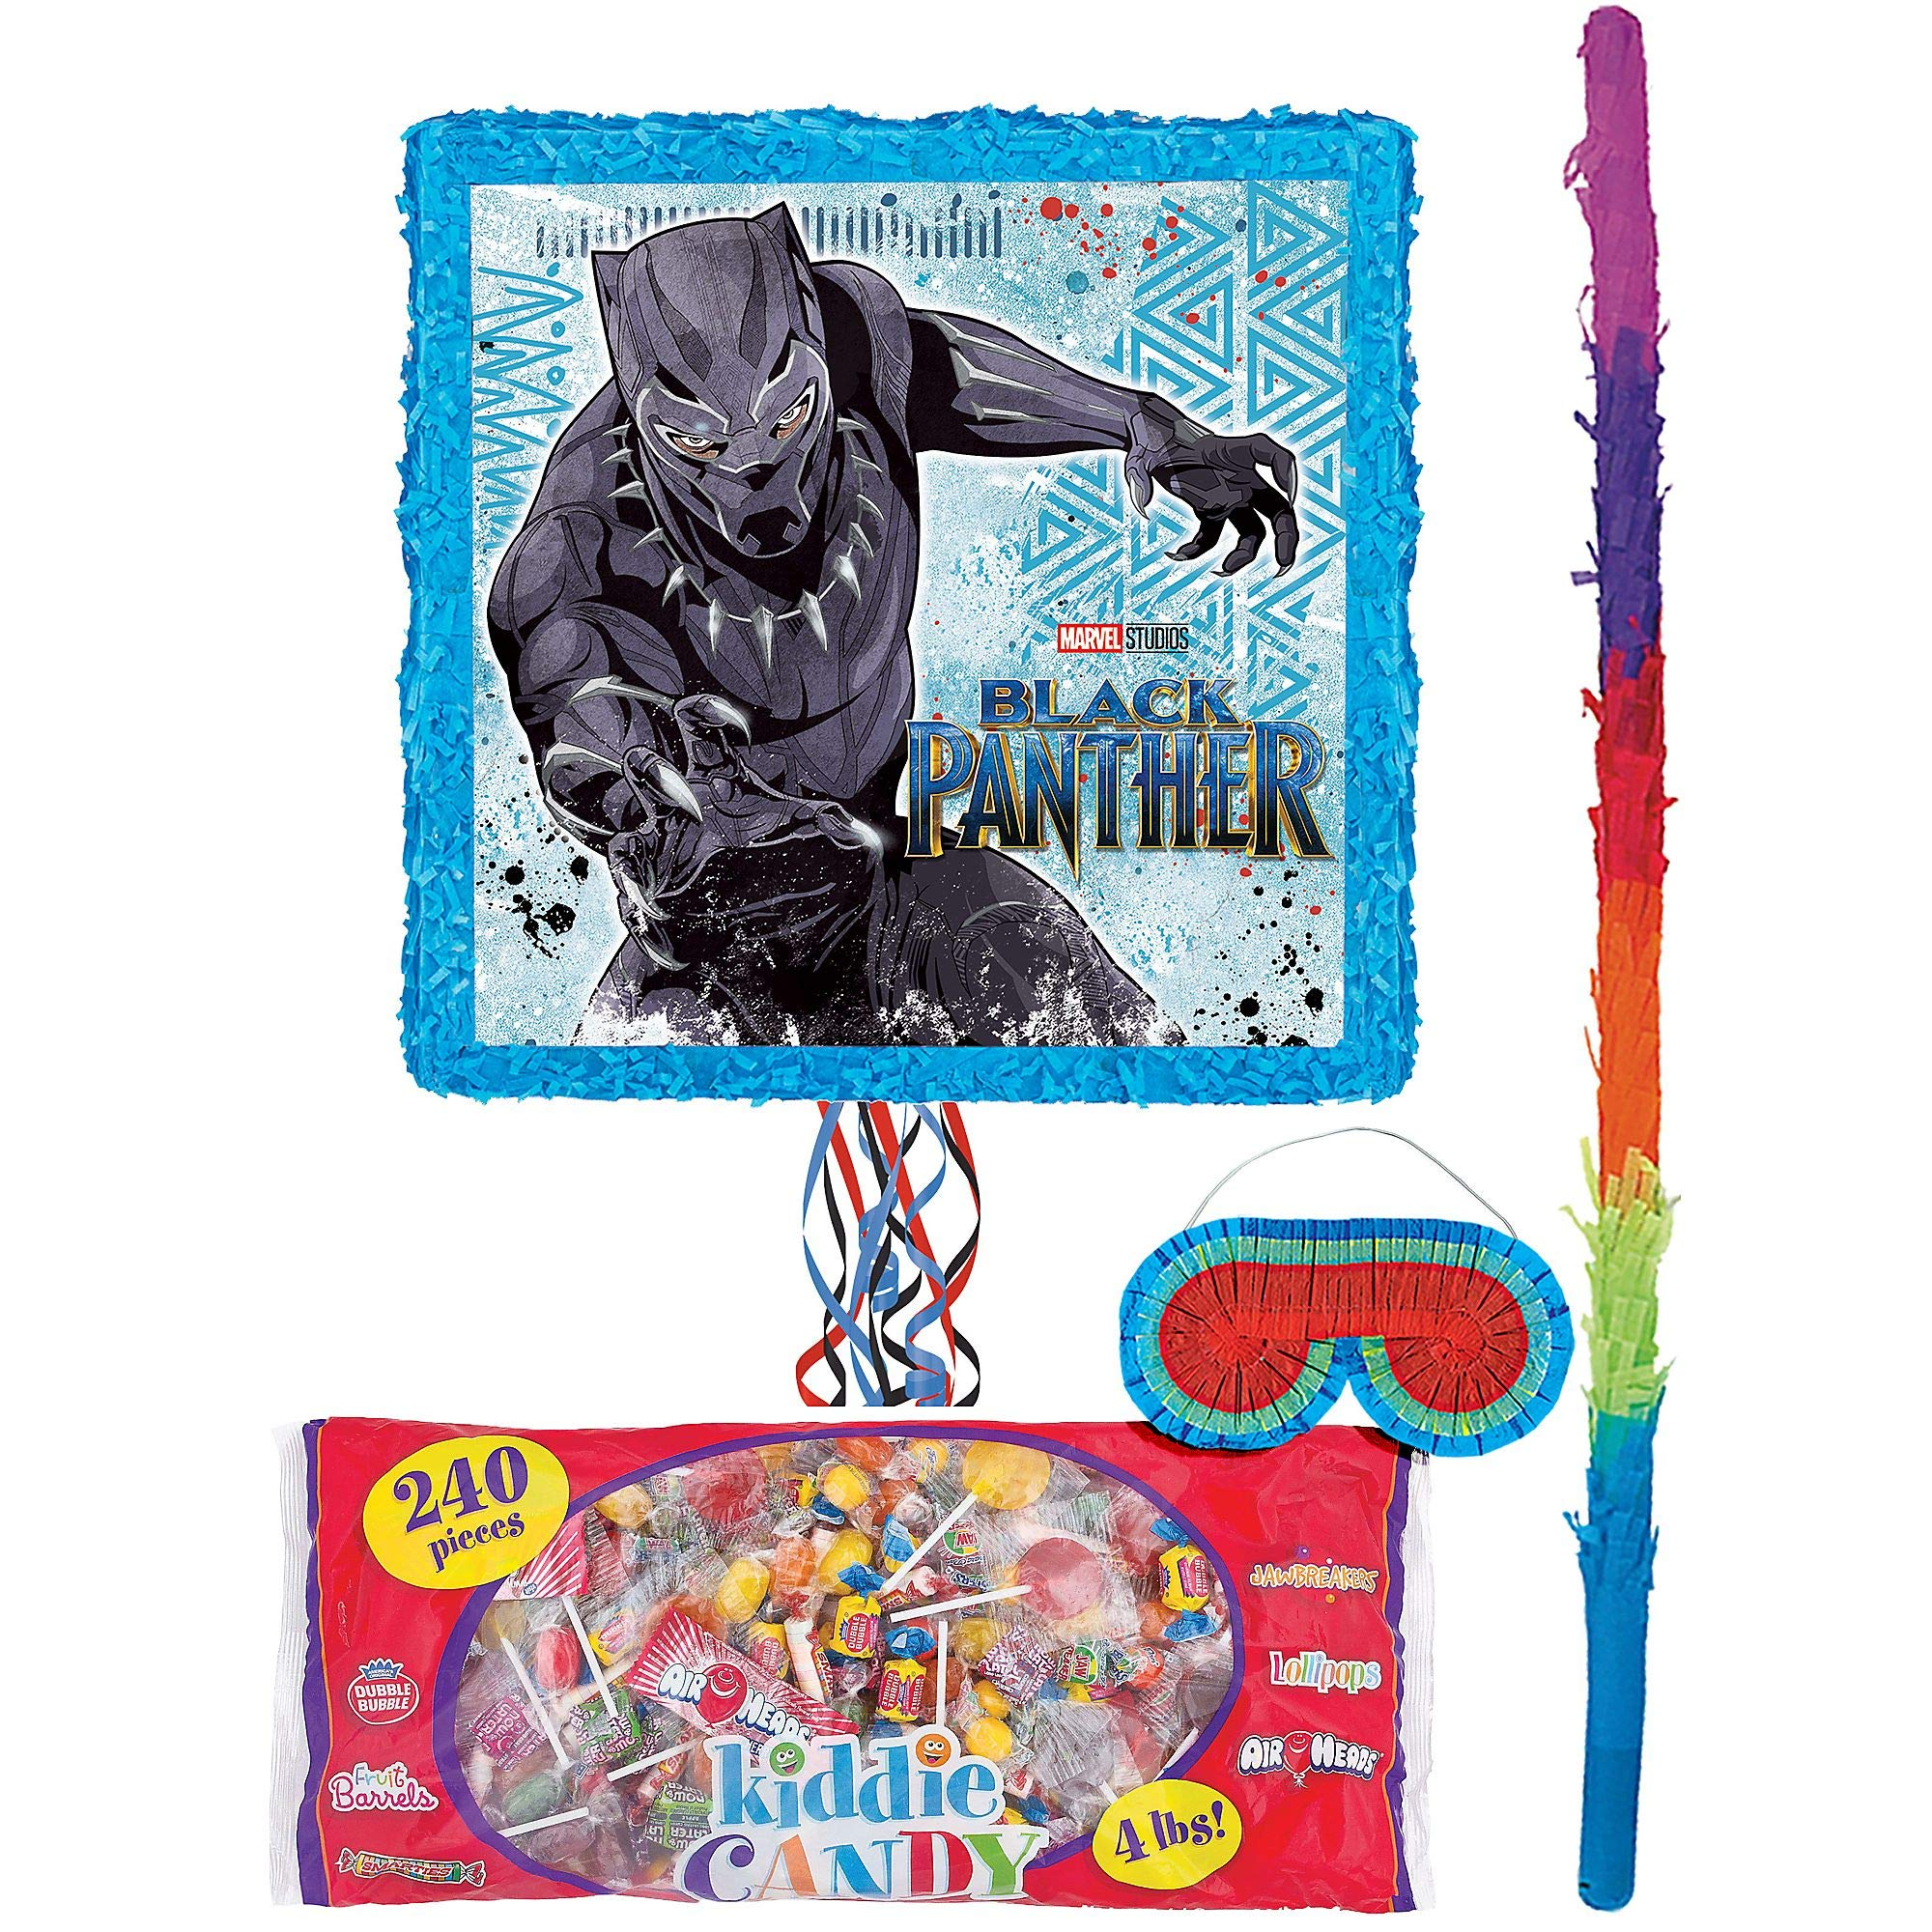 Party City Black Panther Pinata Kit for Birthday Party, Includes Bat, Blindfold and Kiddie Candy Mix (4lb bag)